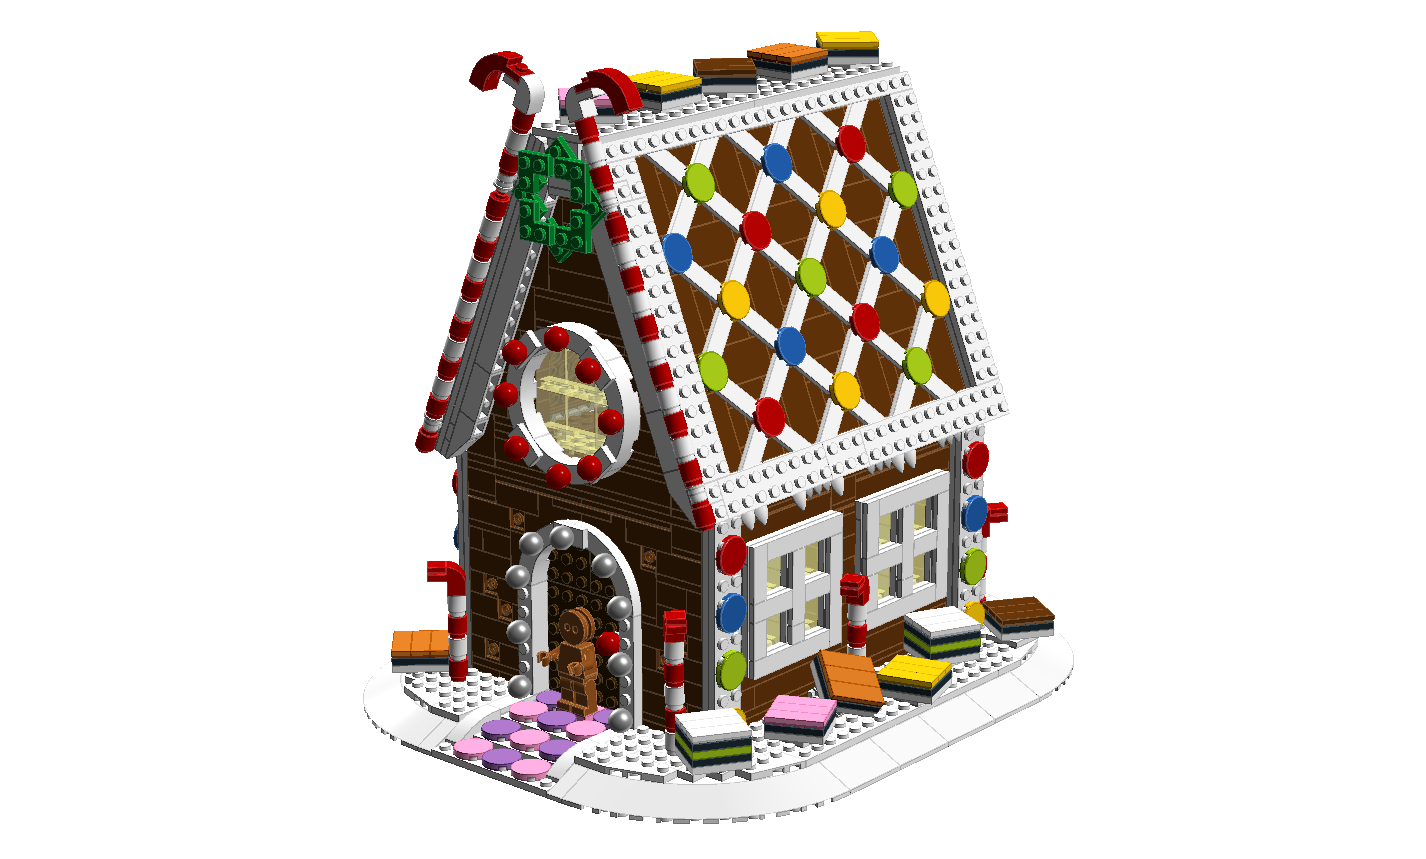 Gingerbread House Gingerbread house, Cookie house